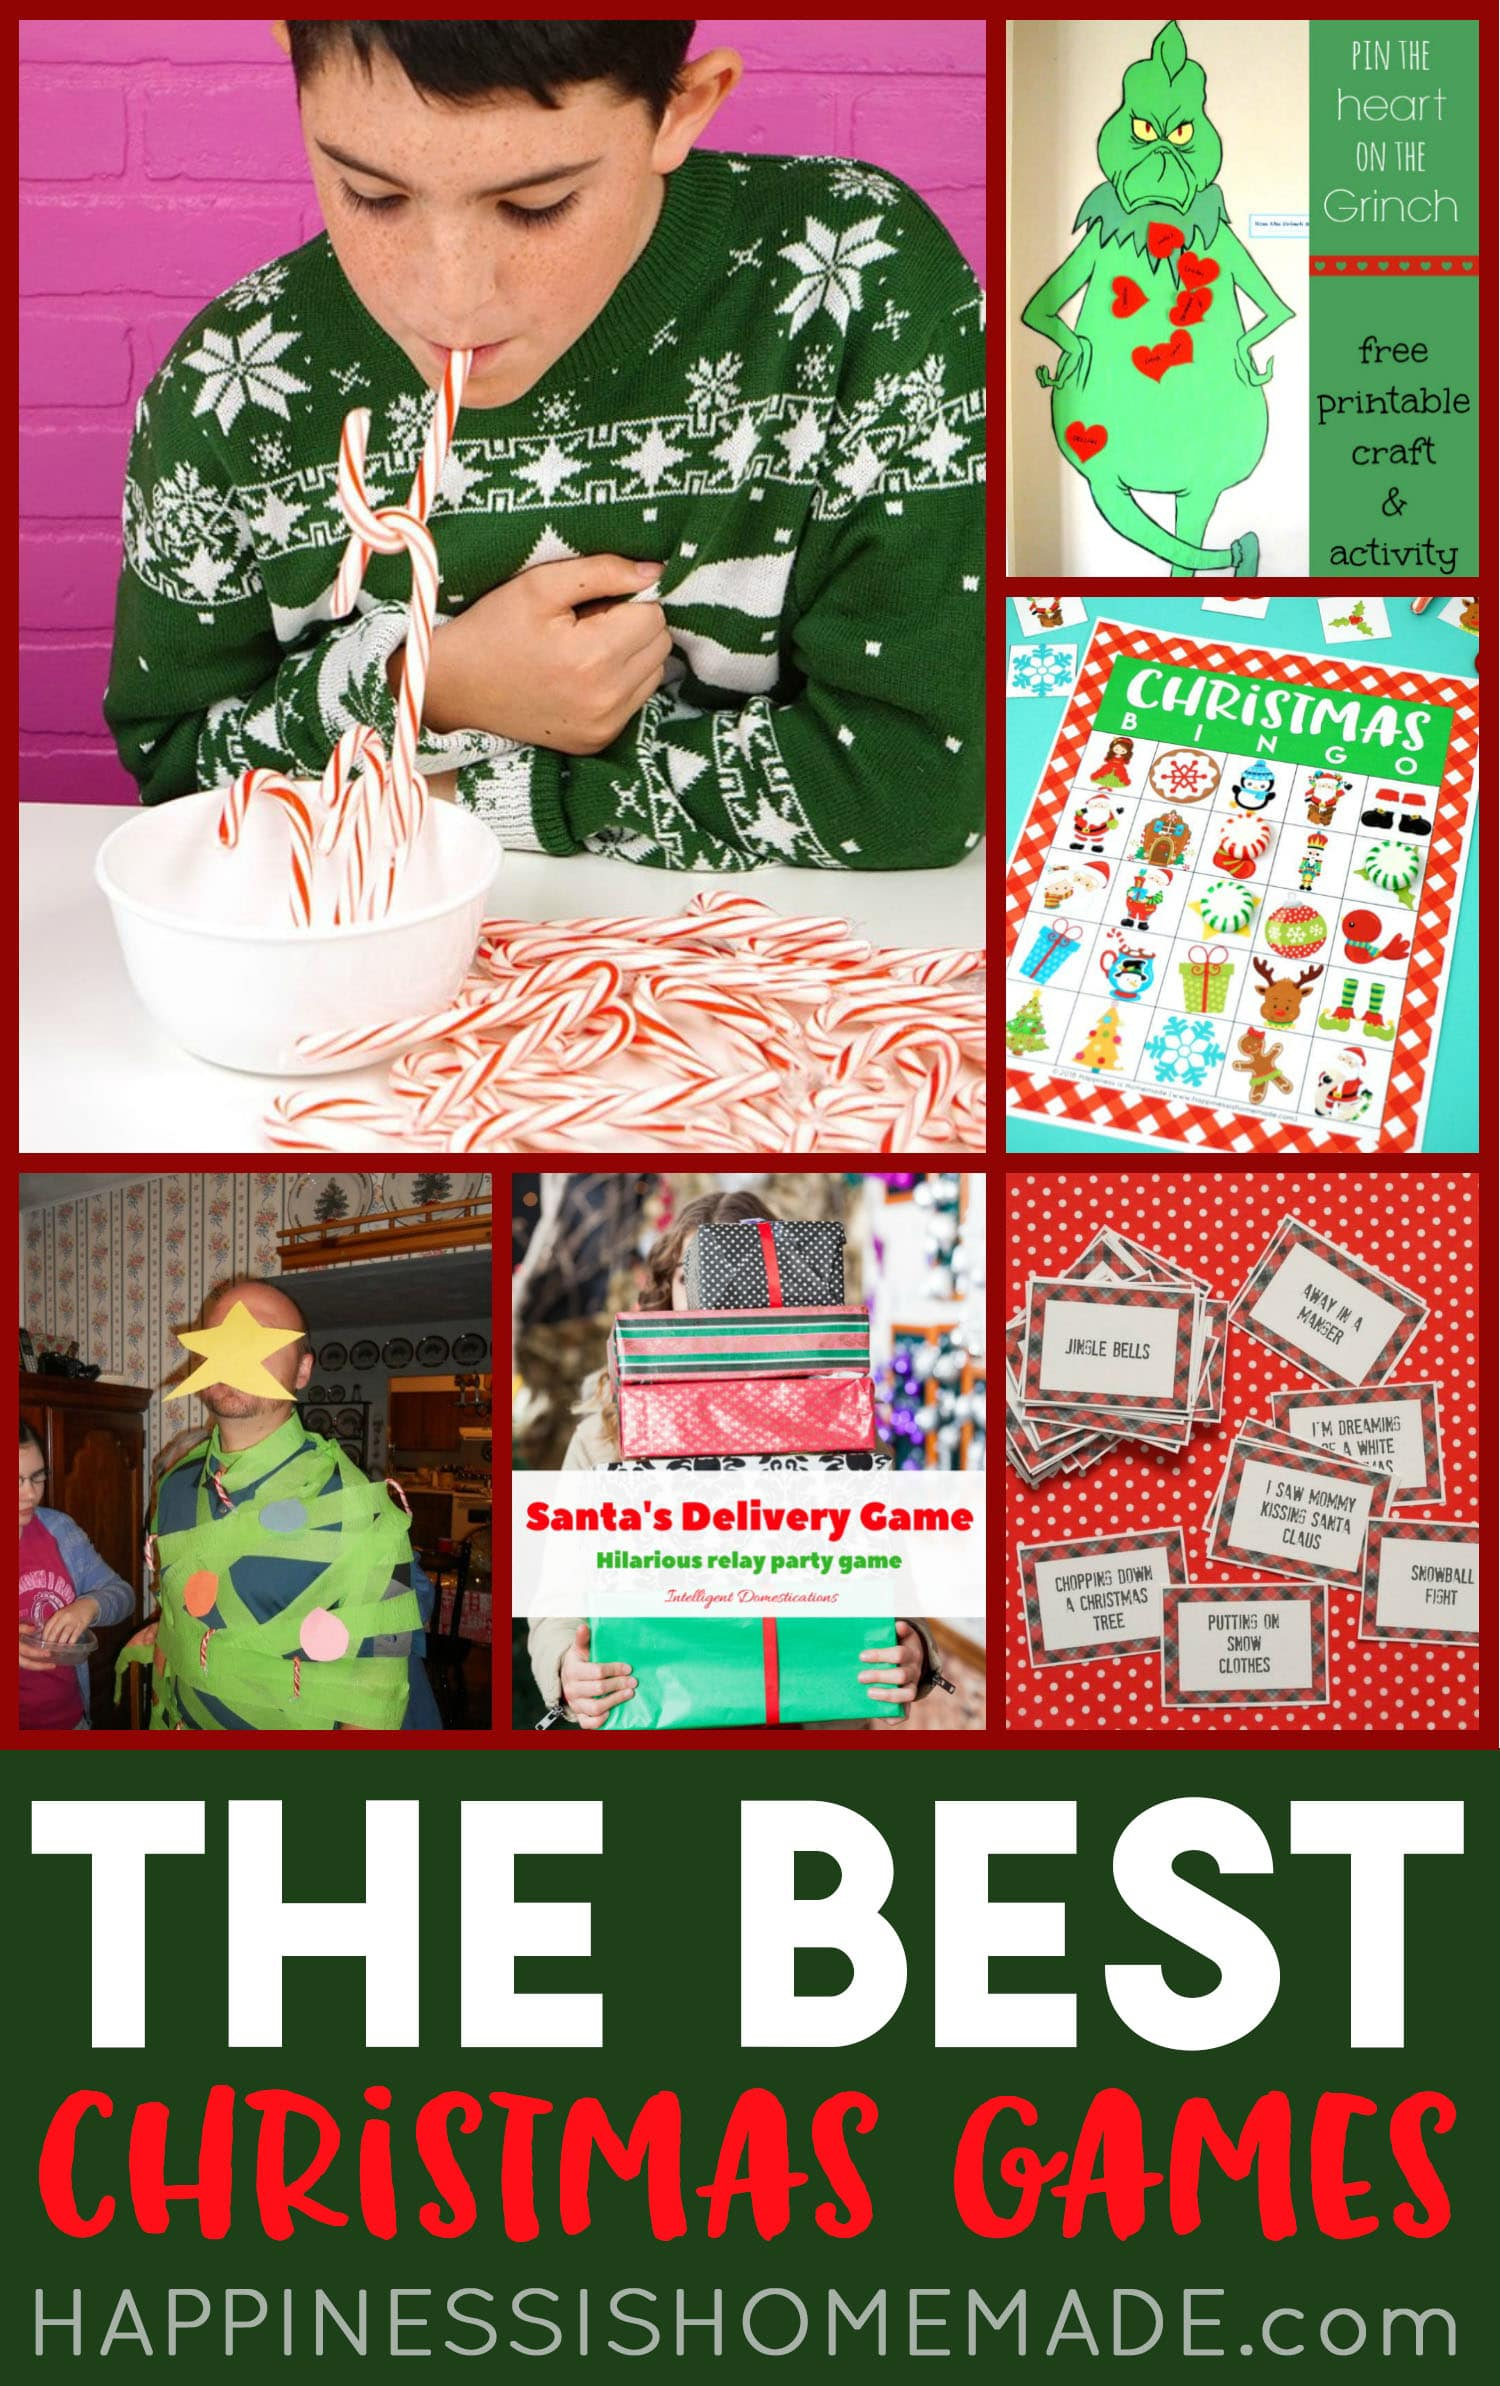 The Best Christmas Games for Kids collage